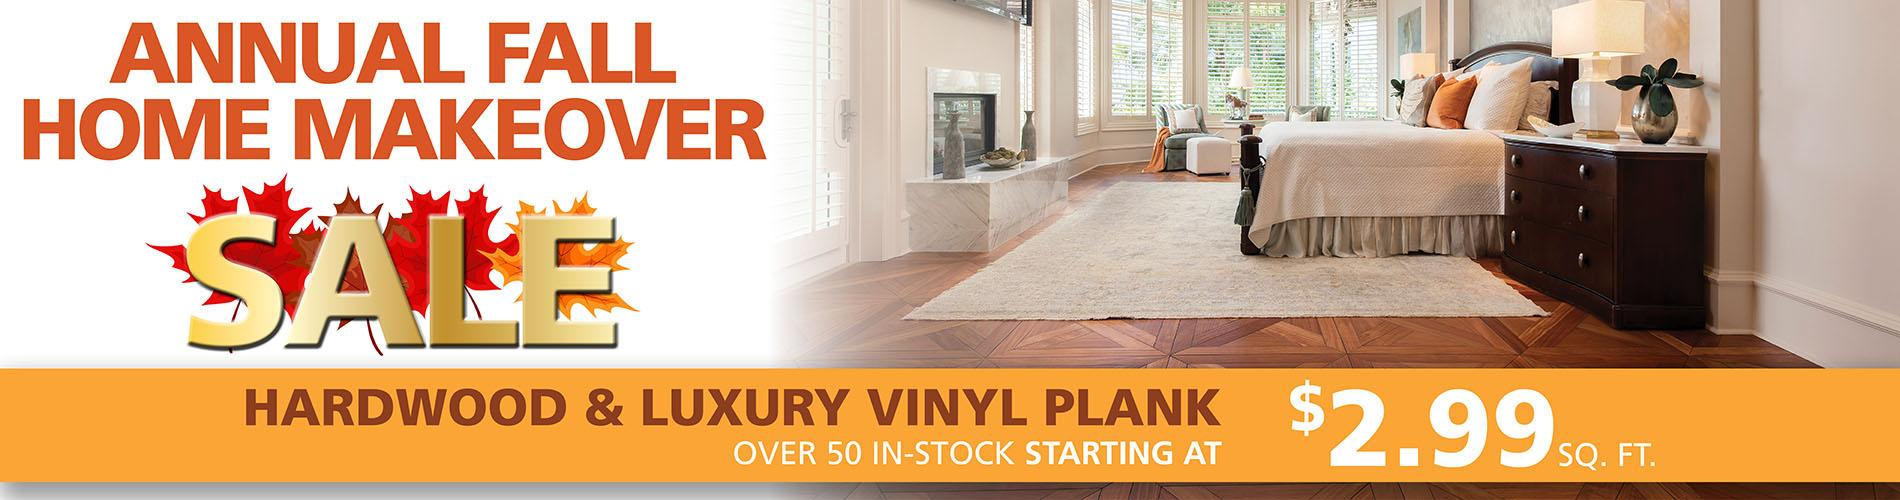 We have over 50 in-stock hardwood and luxury vinyl plank starting at $2.99 sq. ft. during our Annual Fall Home Makeover Sale